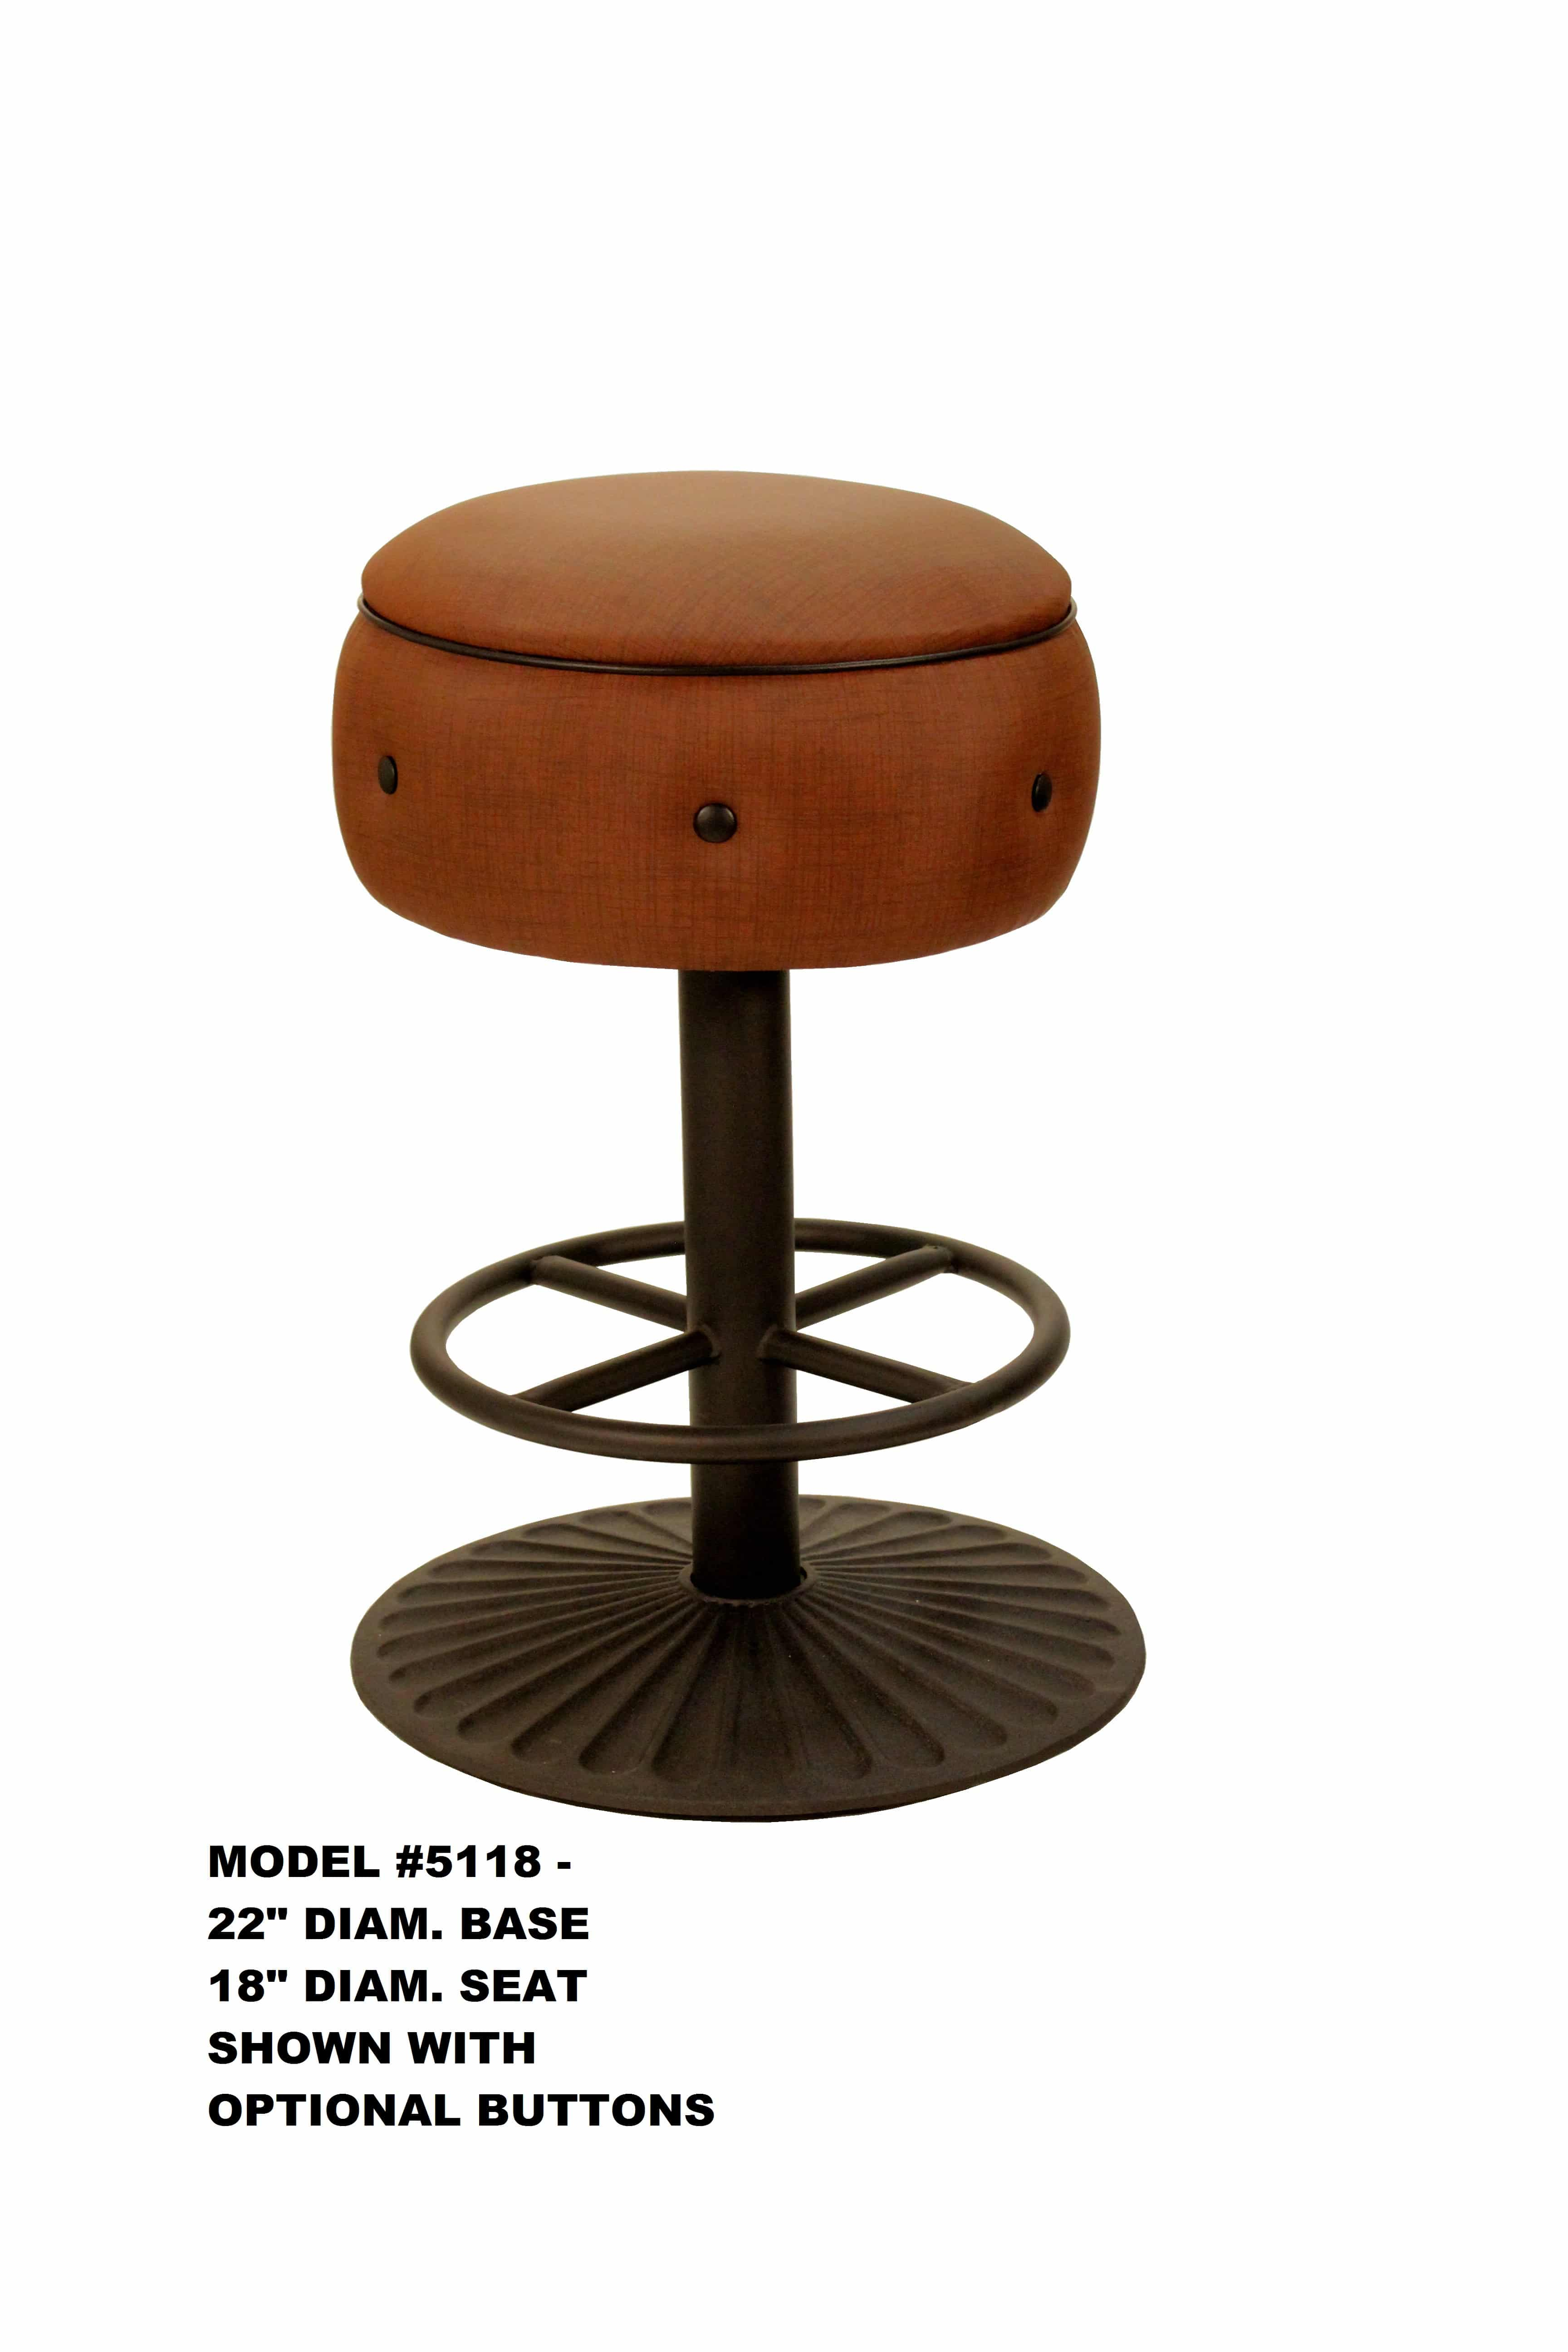 Outstanding Heavy Duty Round Seat Swivel Backless Metal Bar Stool Pabps2019 Chair Design Images Pabps2019Com